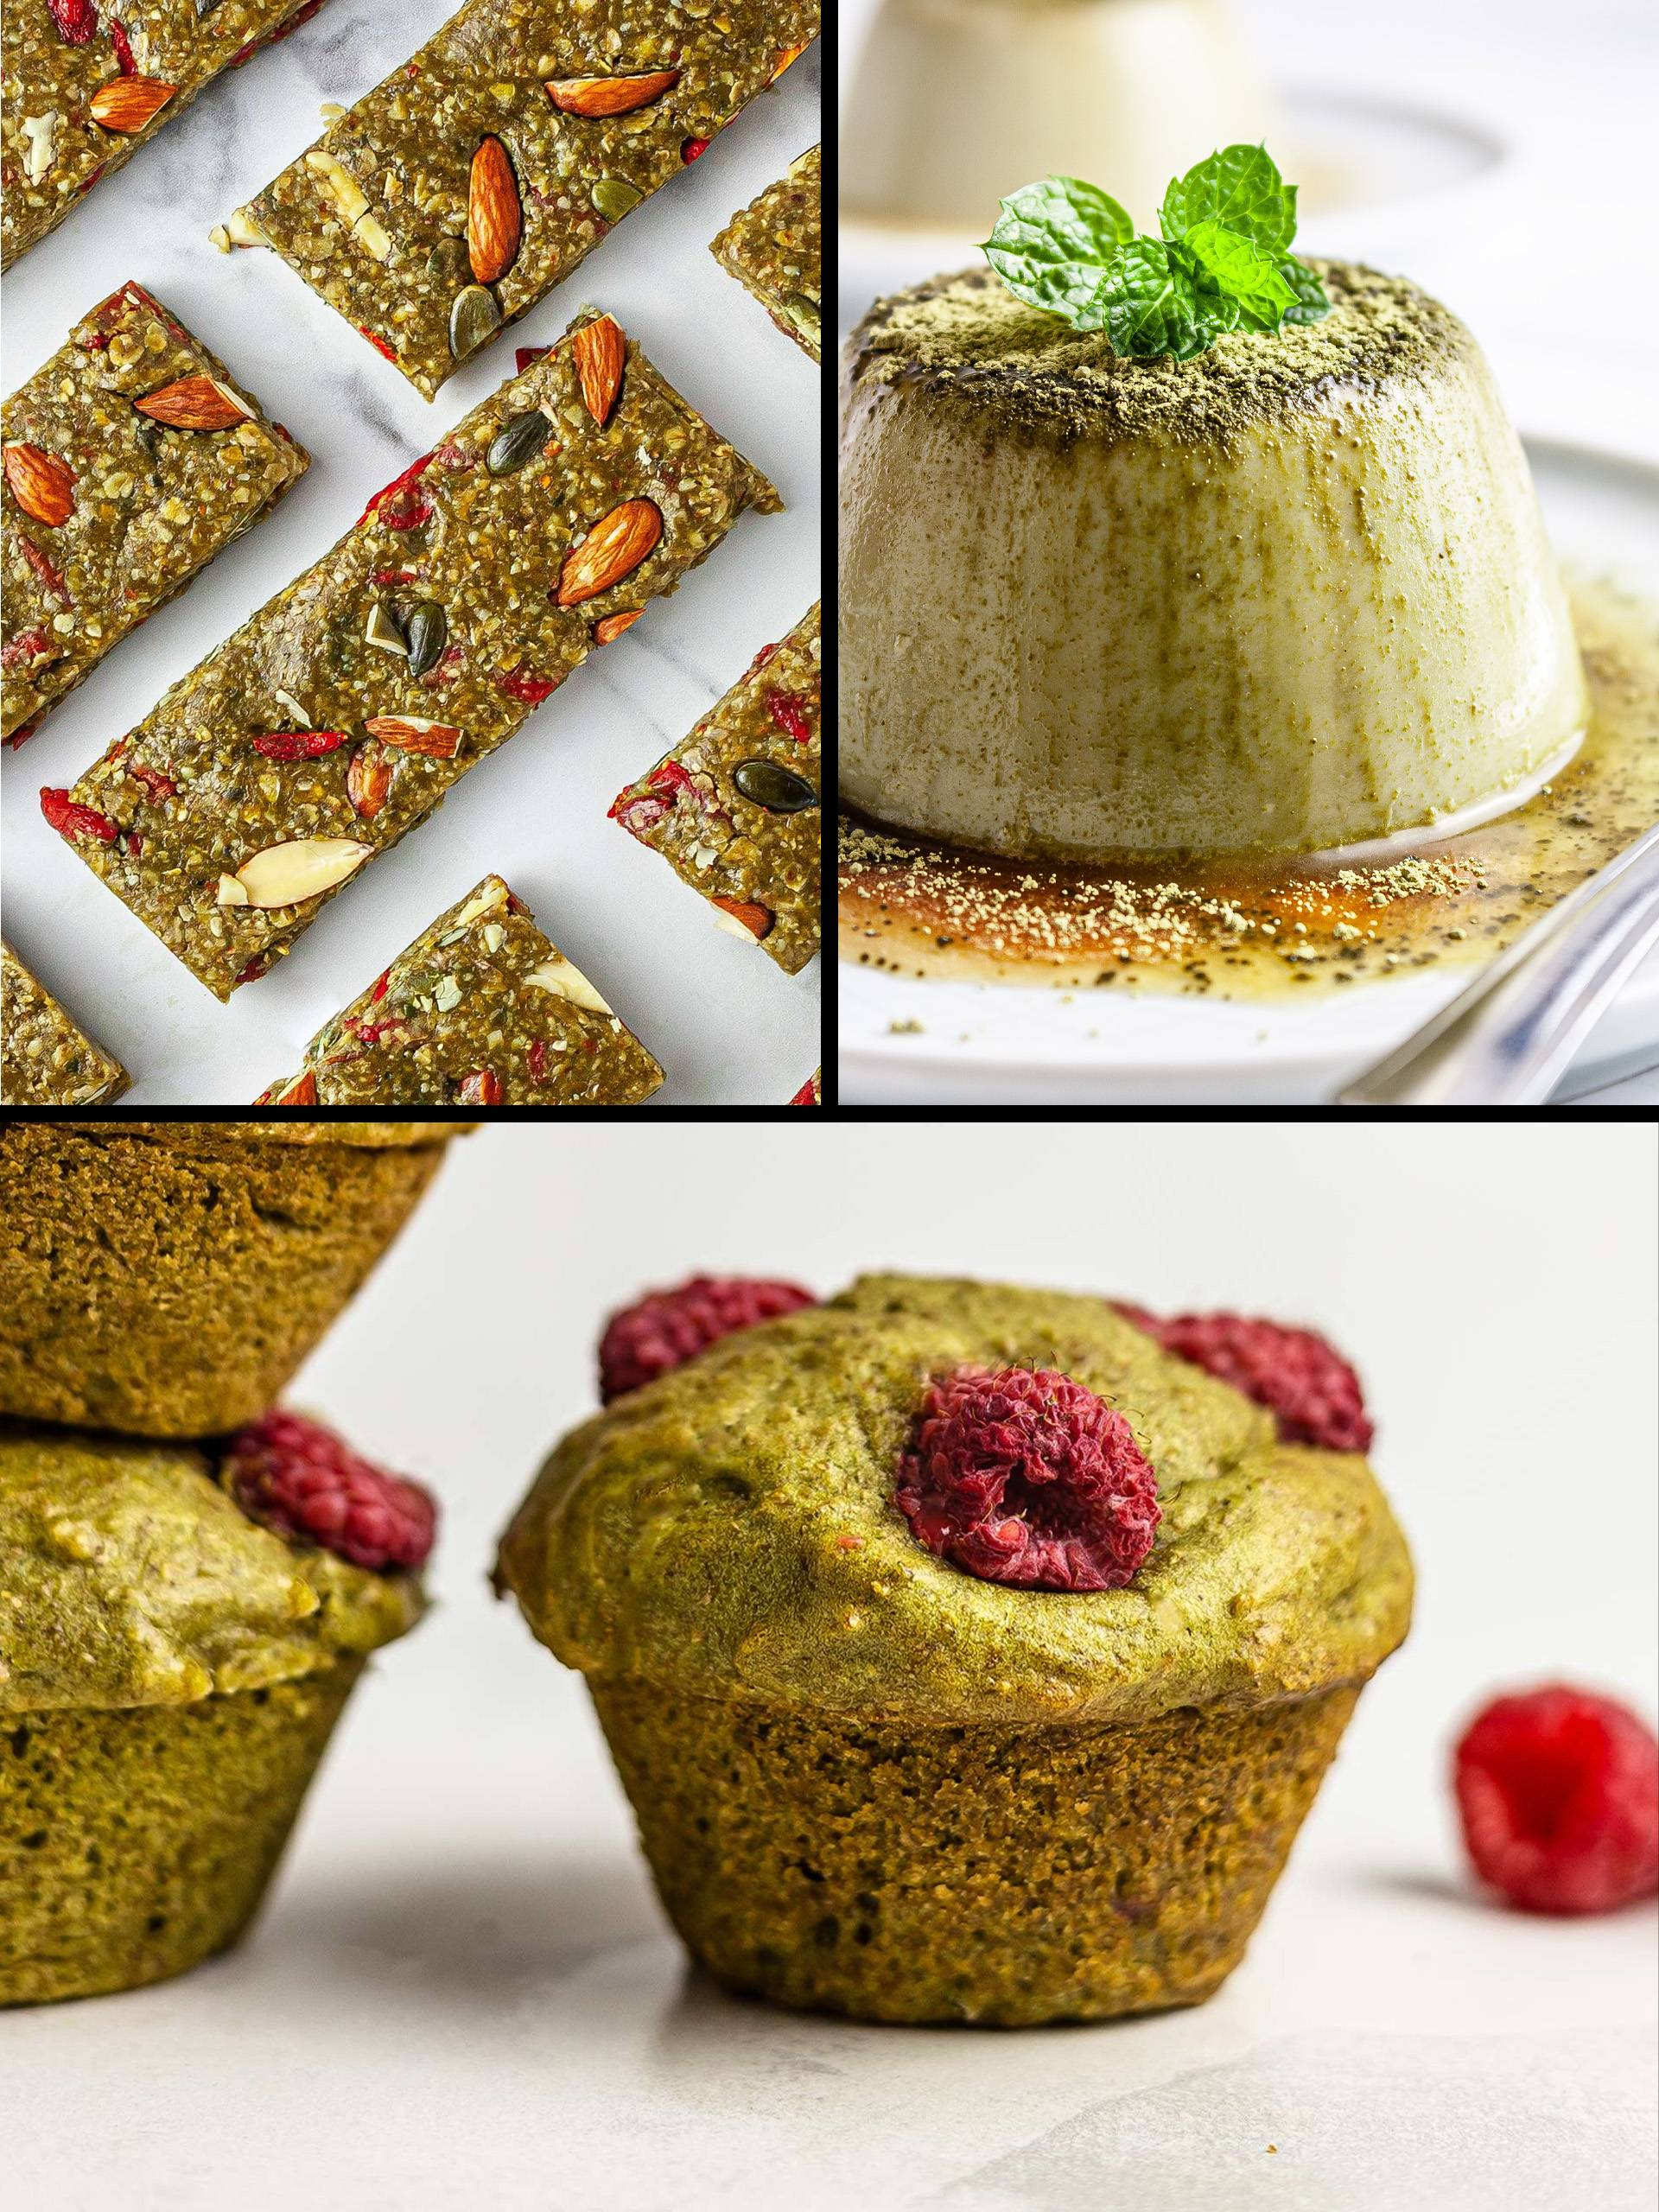 10 Delicious Treats Made with Matcha